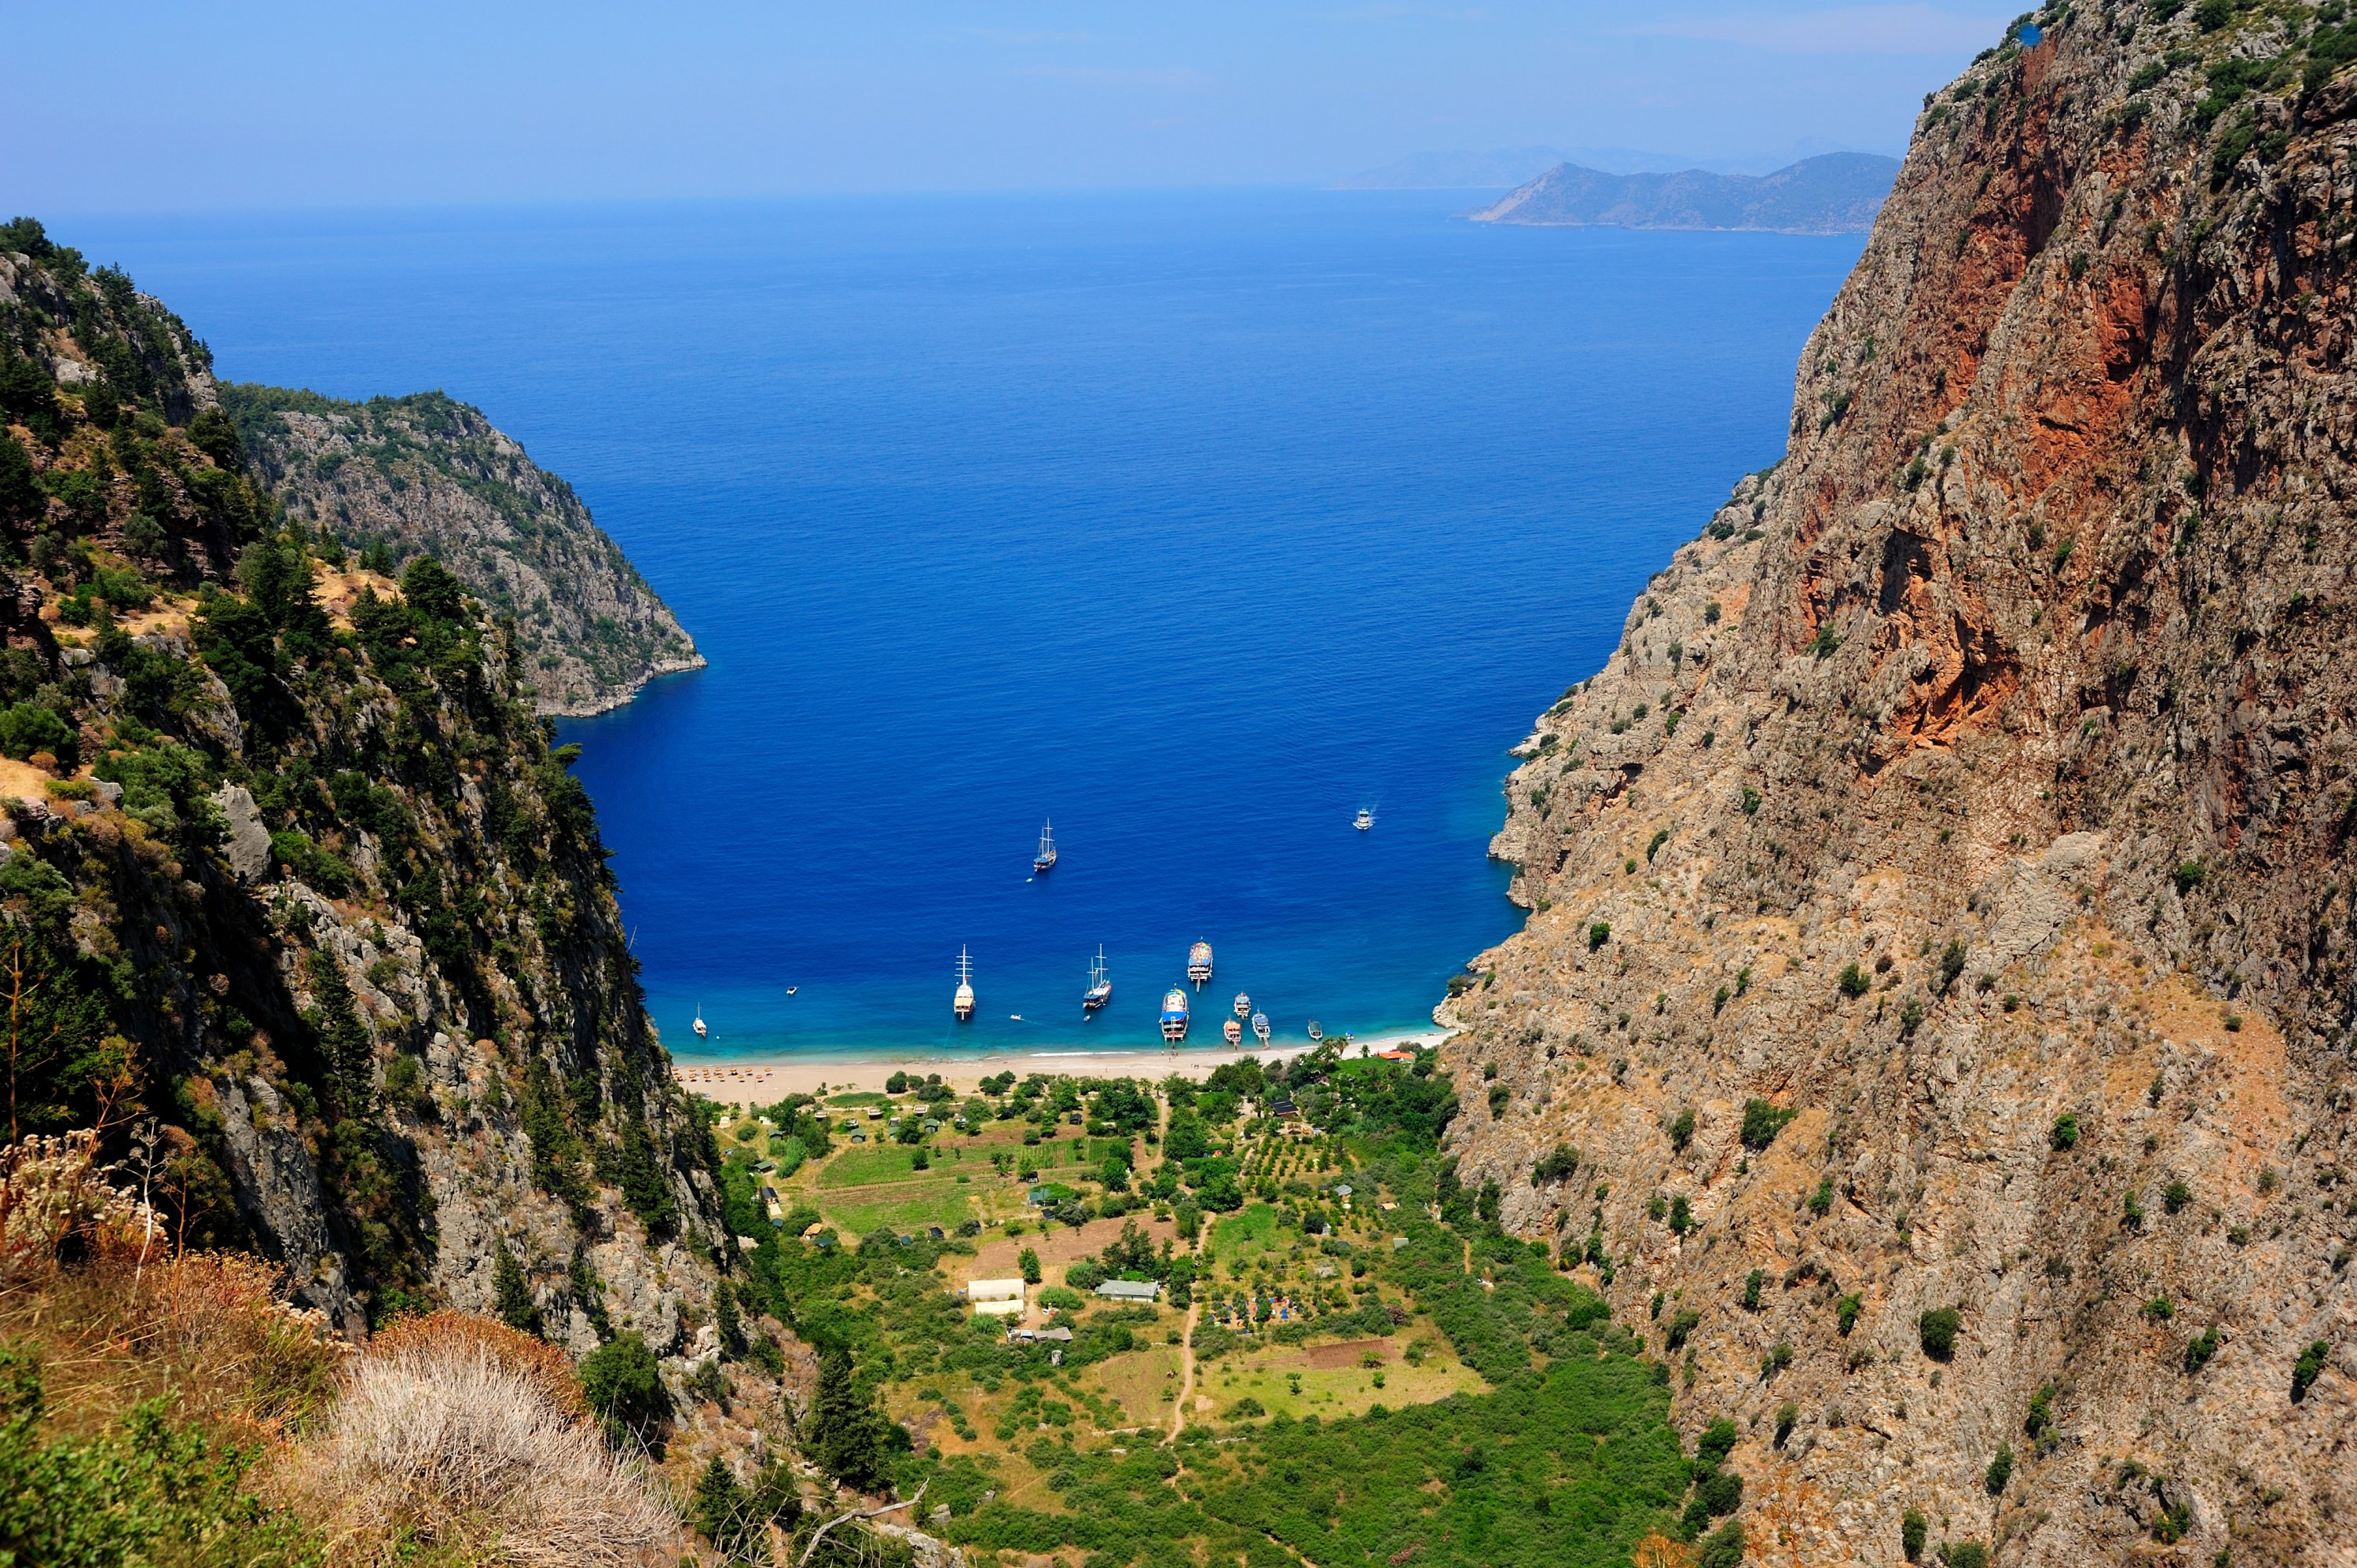 A view of Butterfly Valley. (Shutterstock Photo)